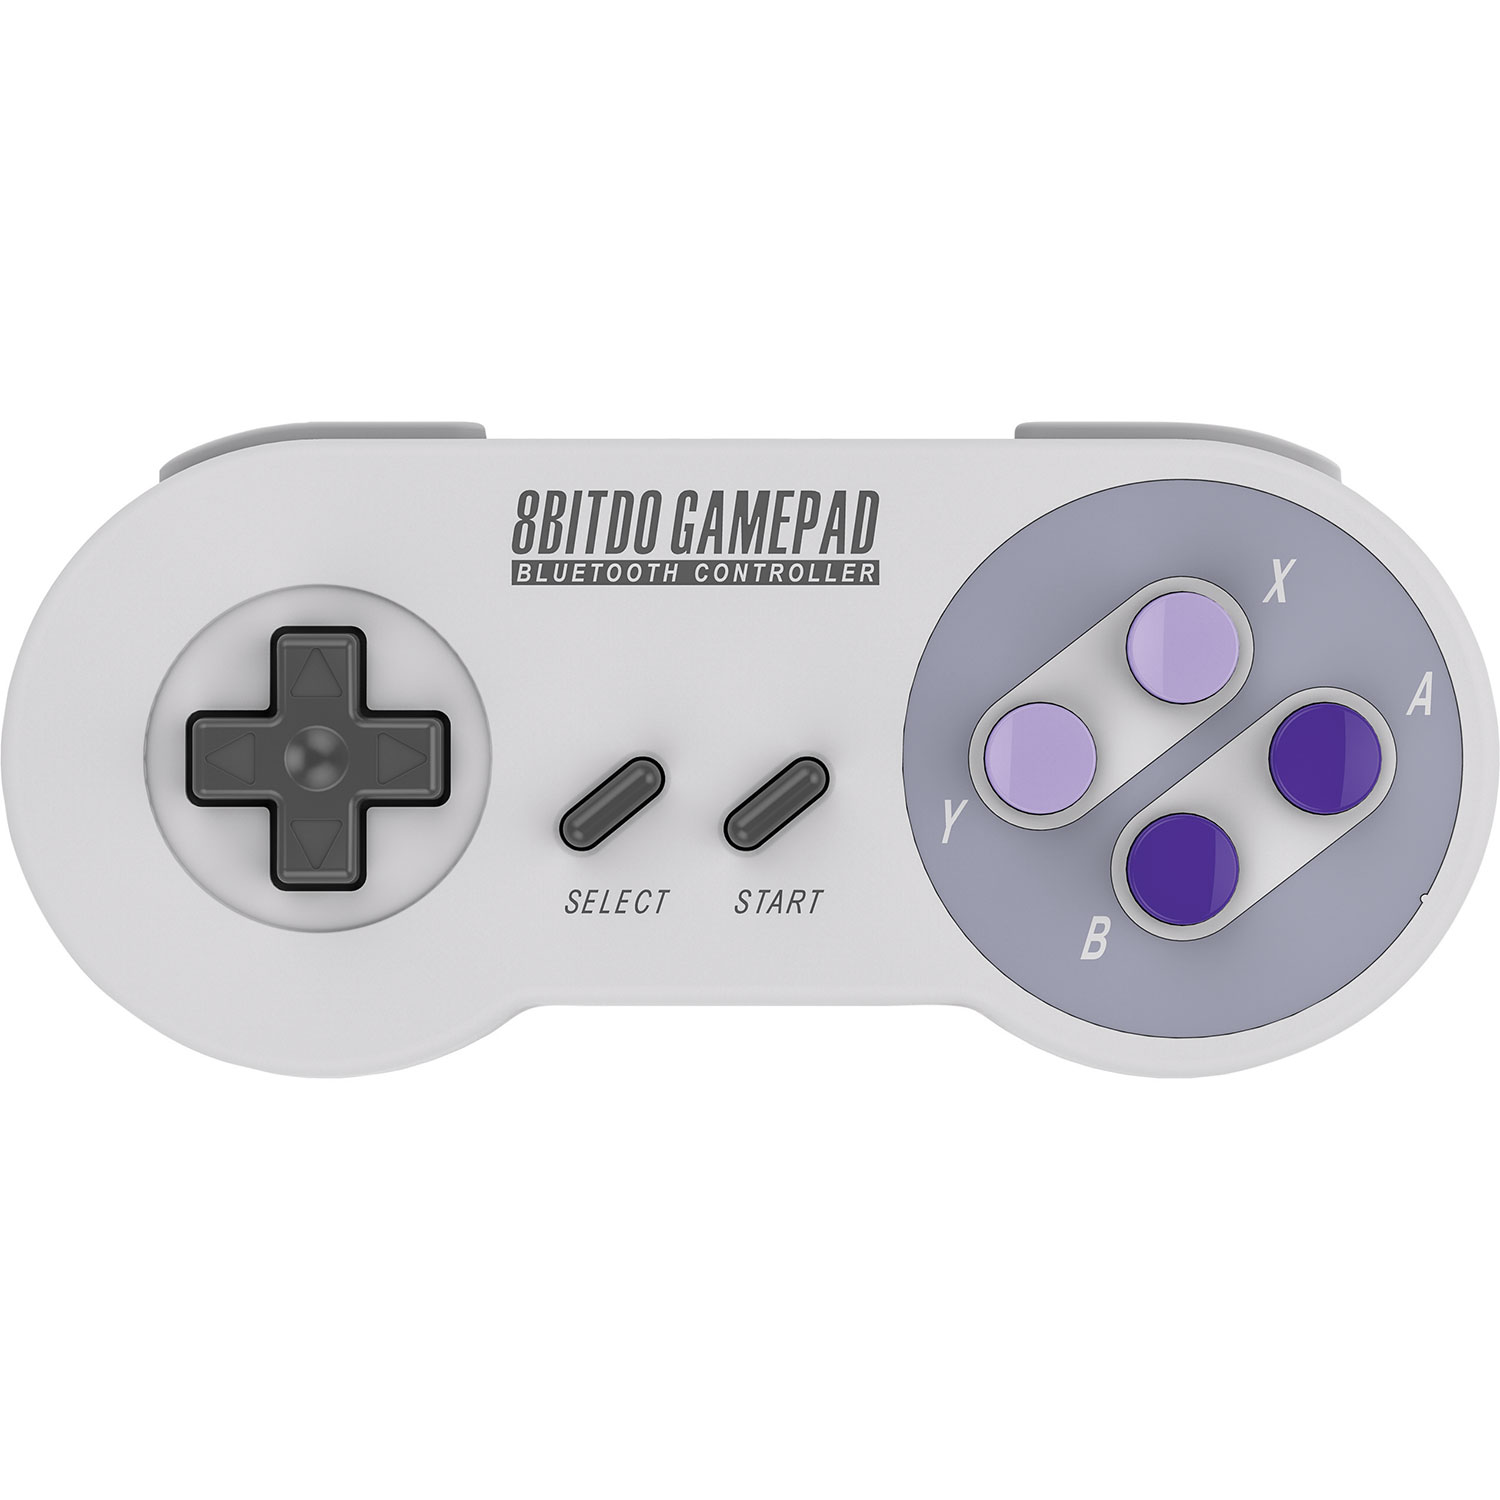 8bitdo SNES30 Wireless Bluetooth Controller product image